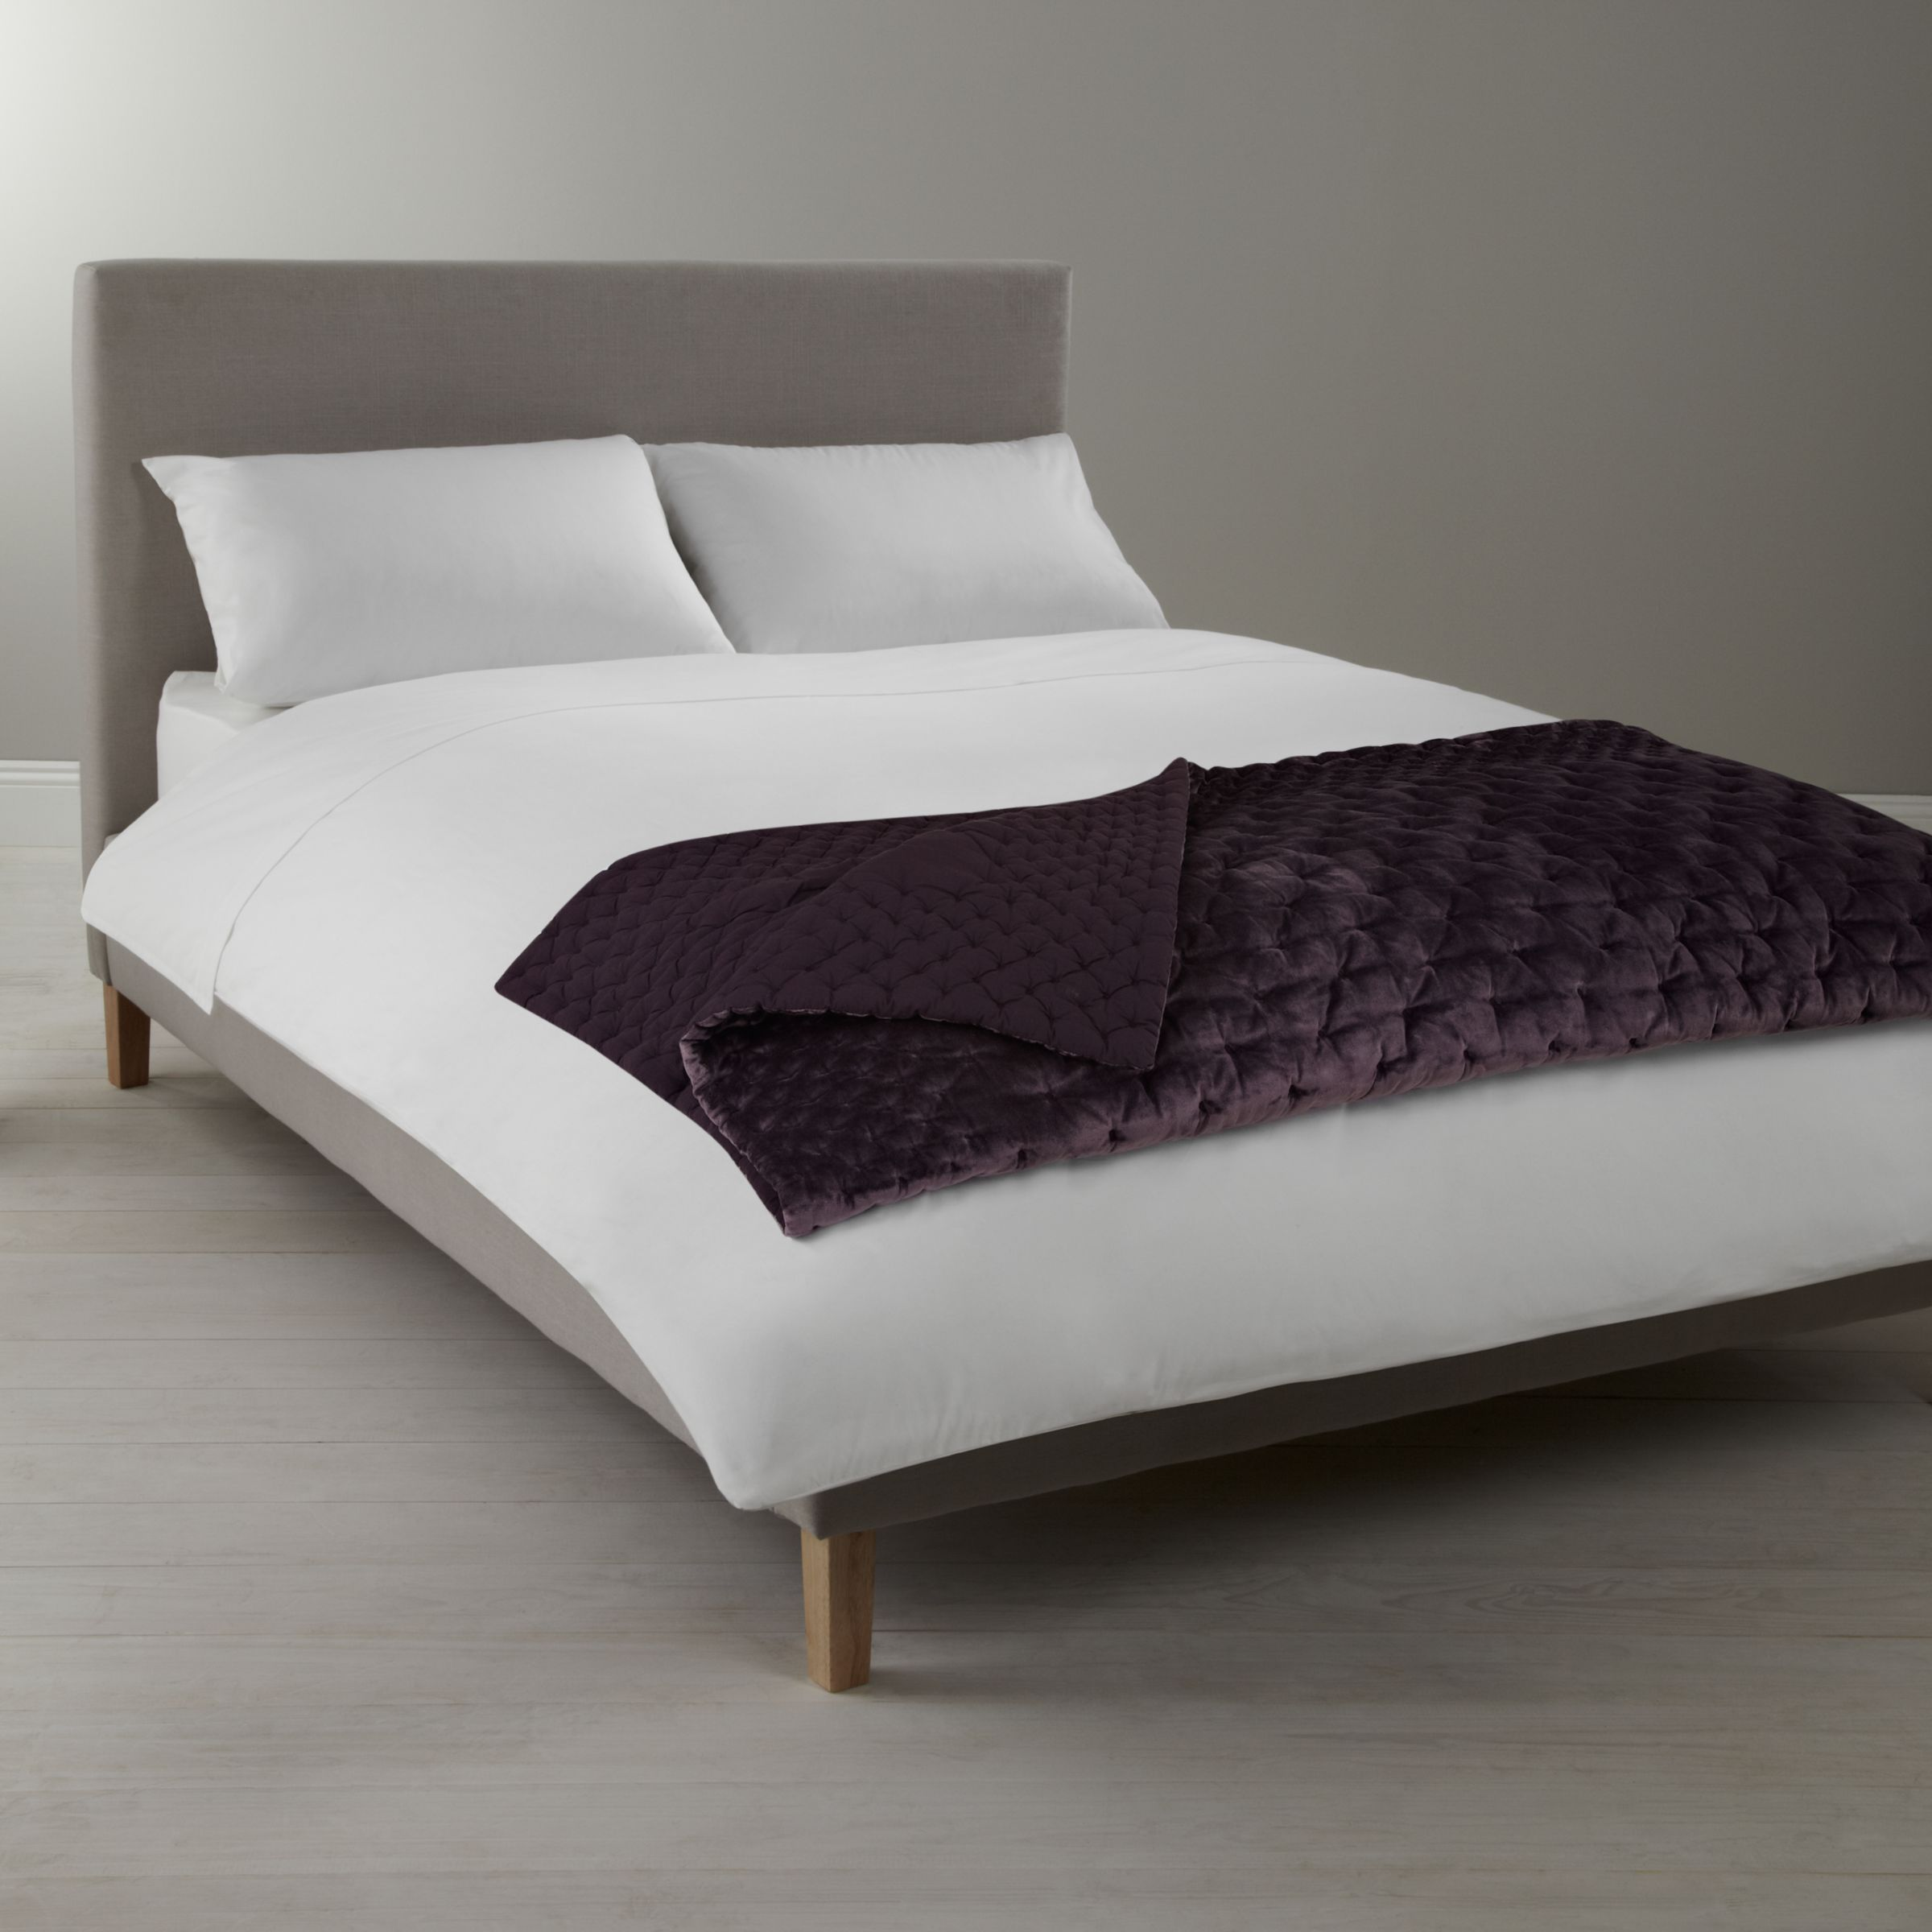 Buy John Lewis Velvet Stitch Throw Online at johnlewis.com